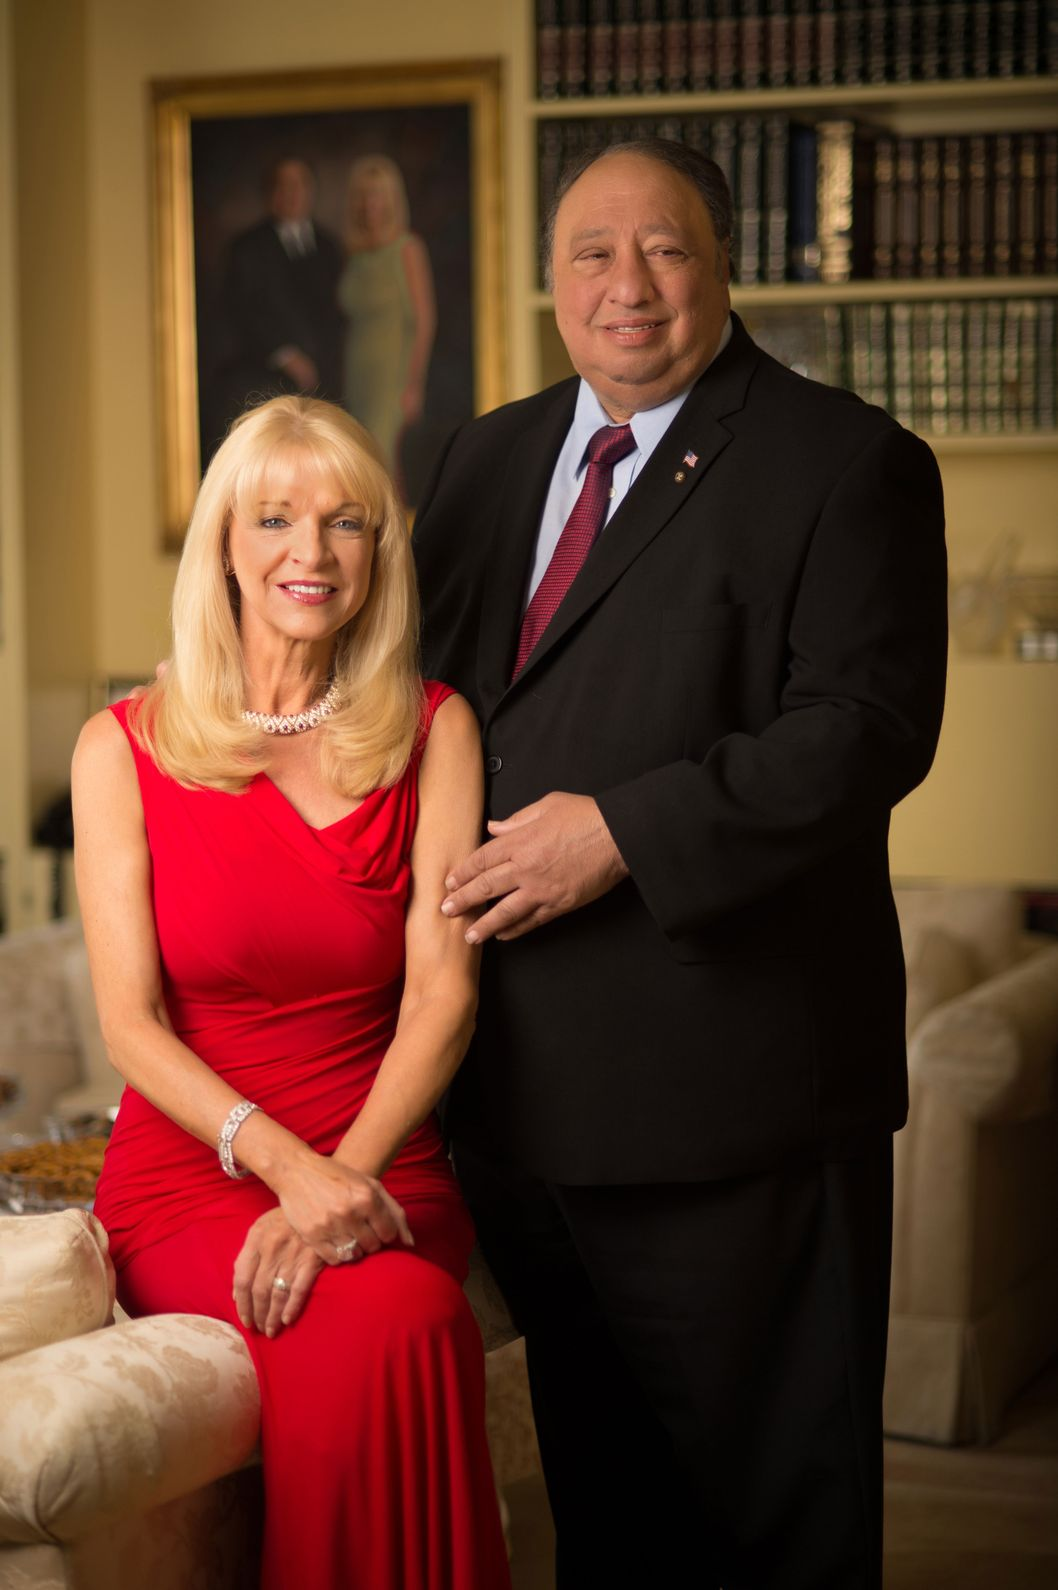 NEW YORK, NY - JUNE 18:  Margo Vondersaar and John Catsimatidis pose during a Resident Magazine photo shoot on June 18, 2013 in New York City.  (Photo by Andrew H. Walker/Getty Images)